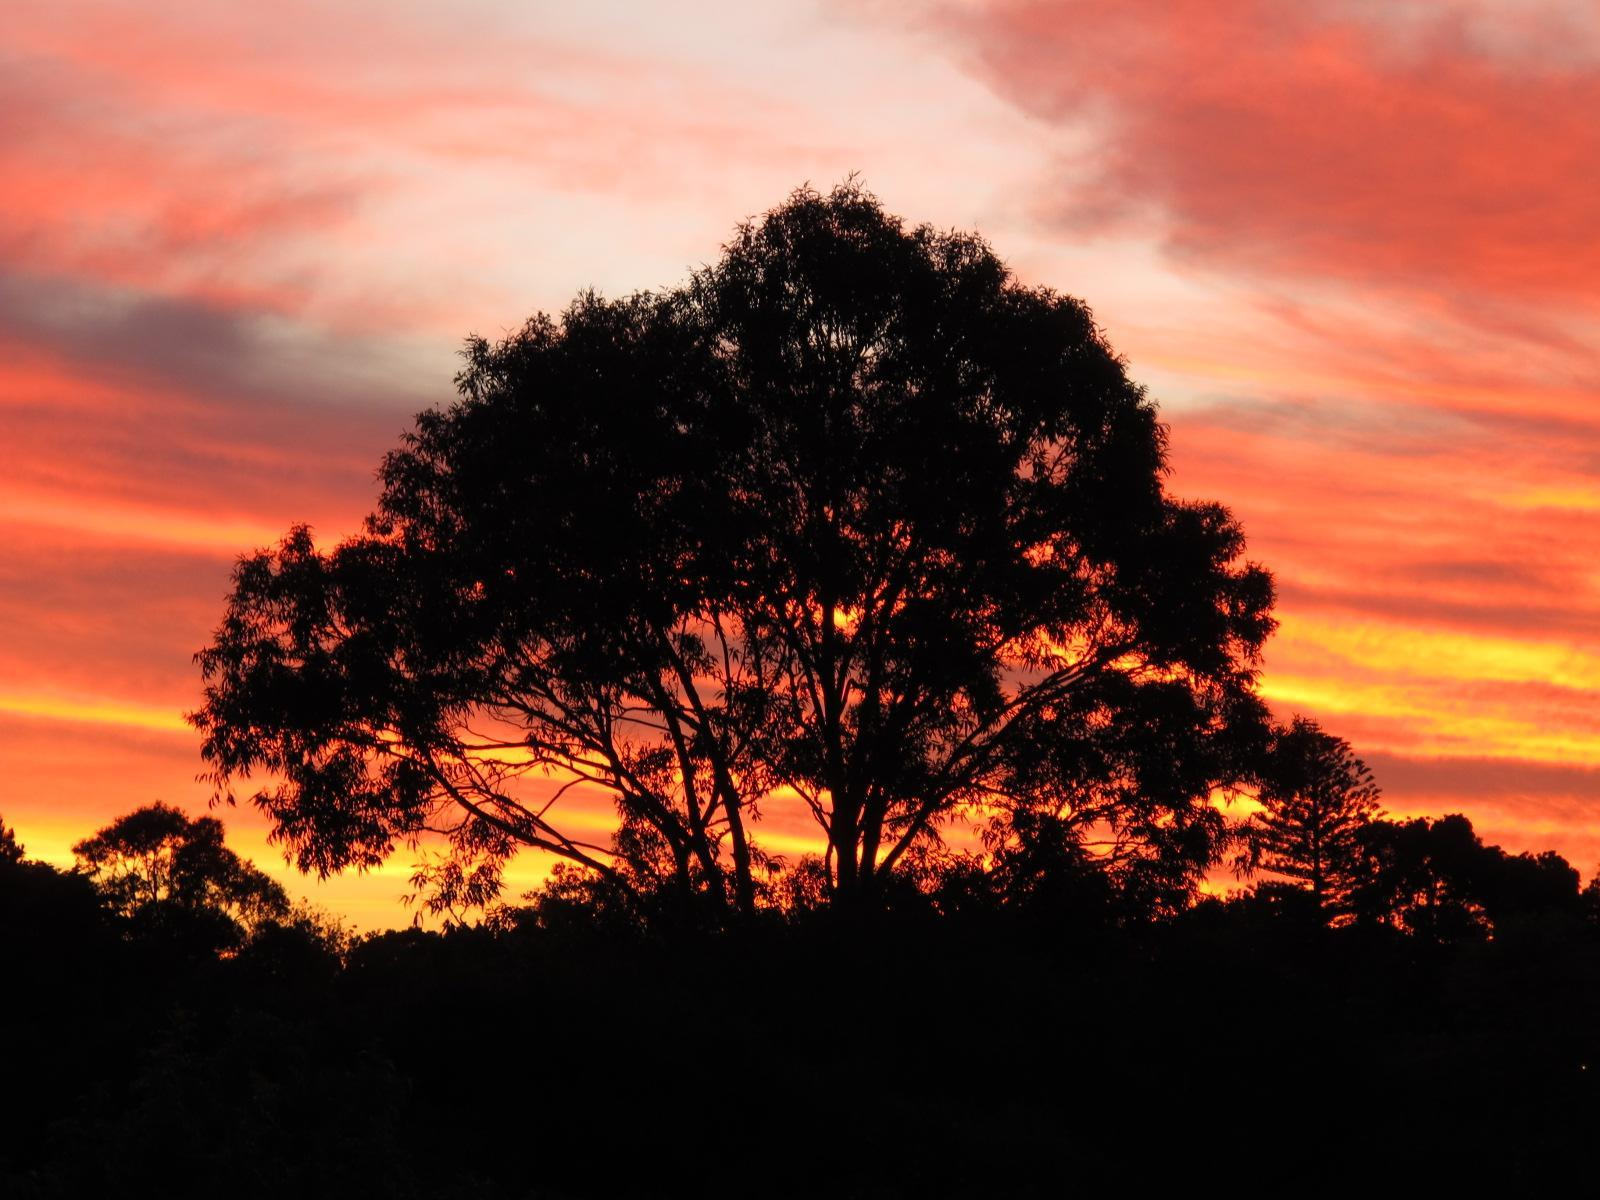 tree at sunset photo by susan wellington